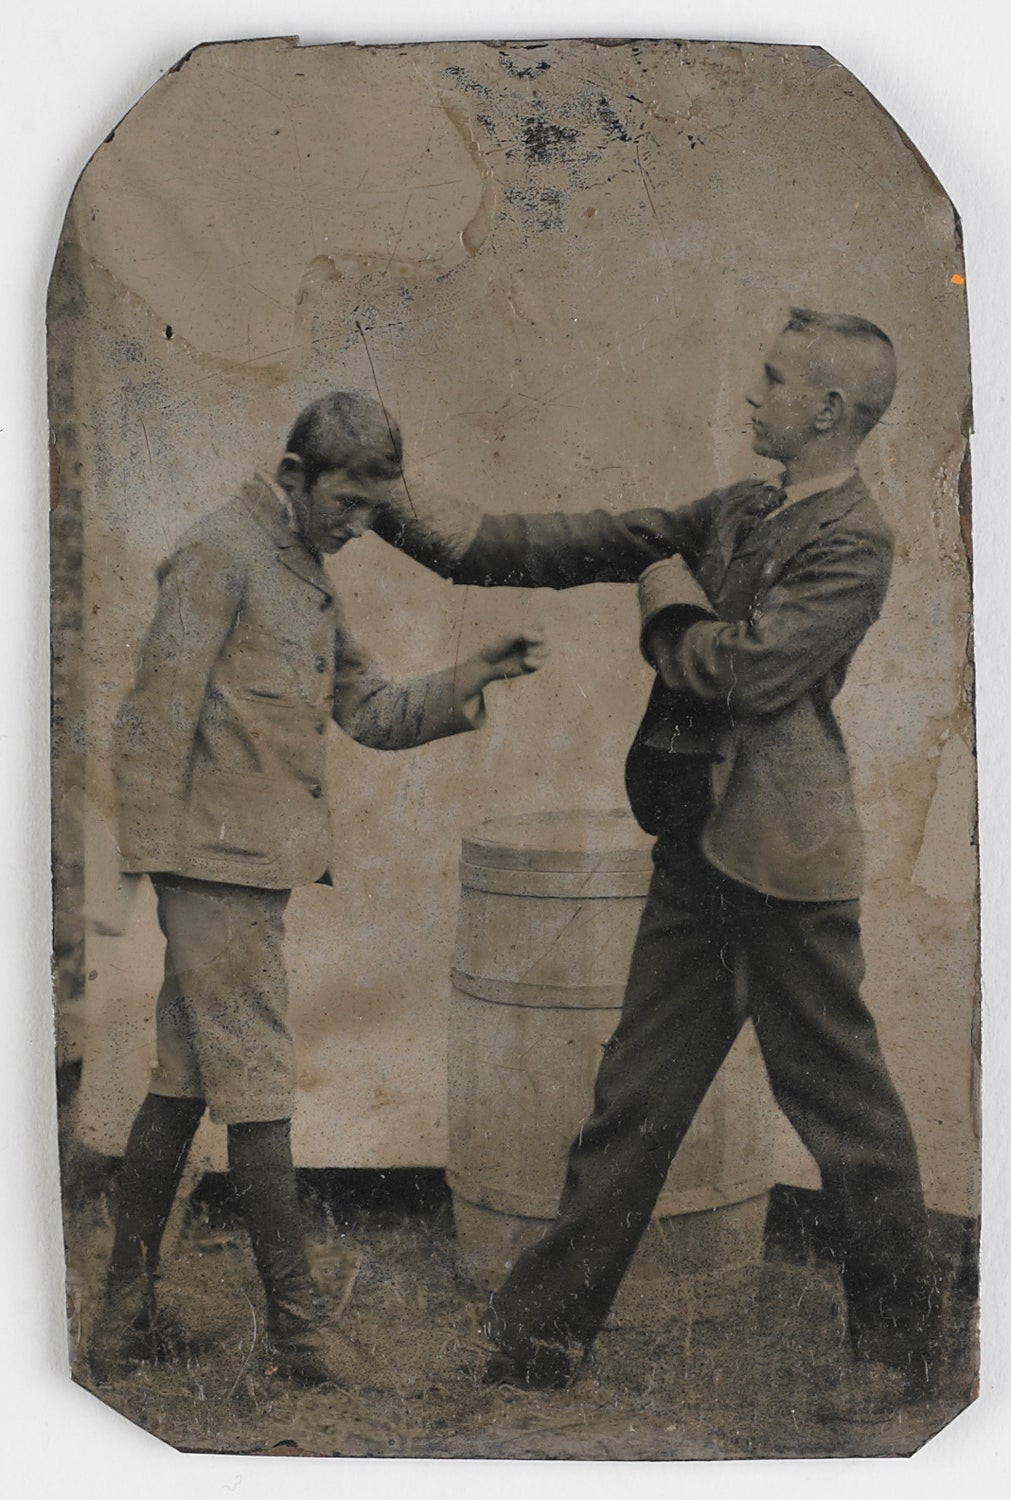 Image of Tintype: two boys boxing with flowerpots, ca. 1890